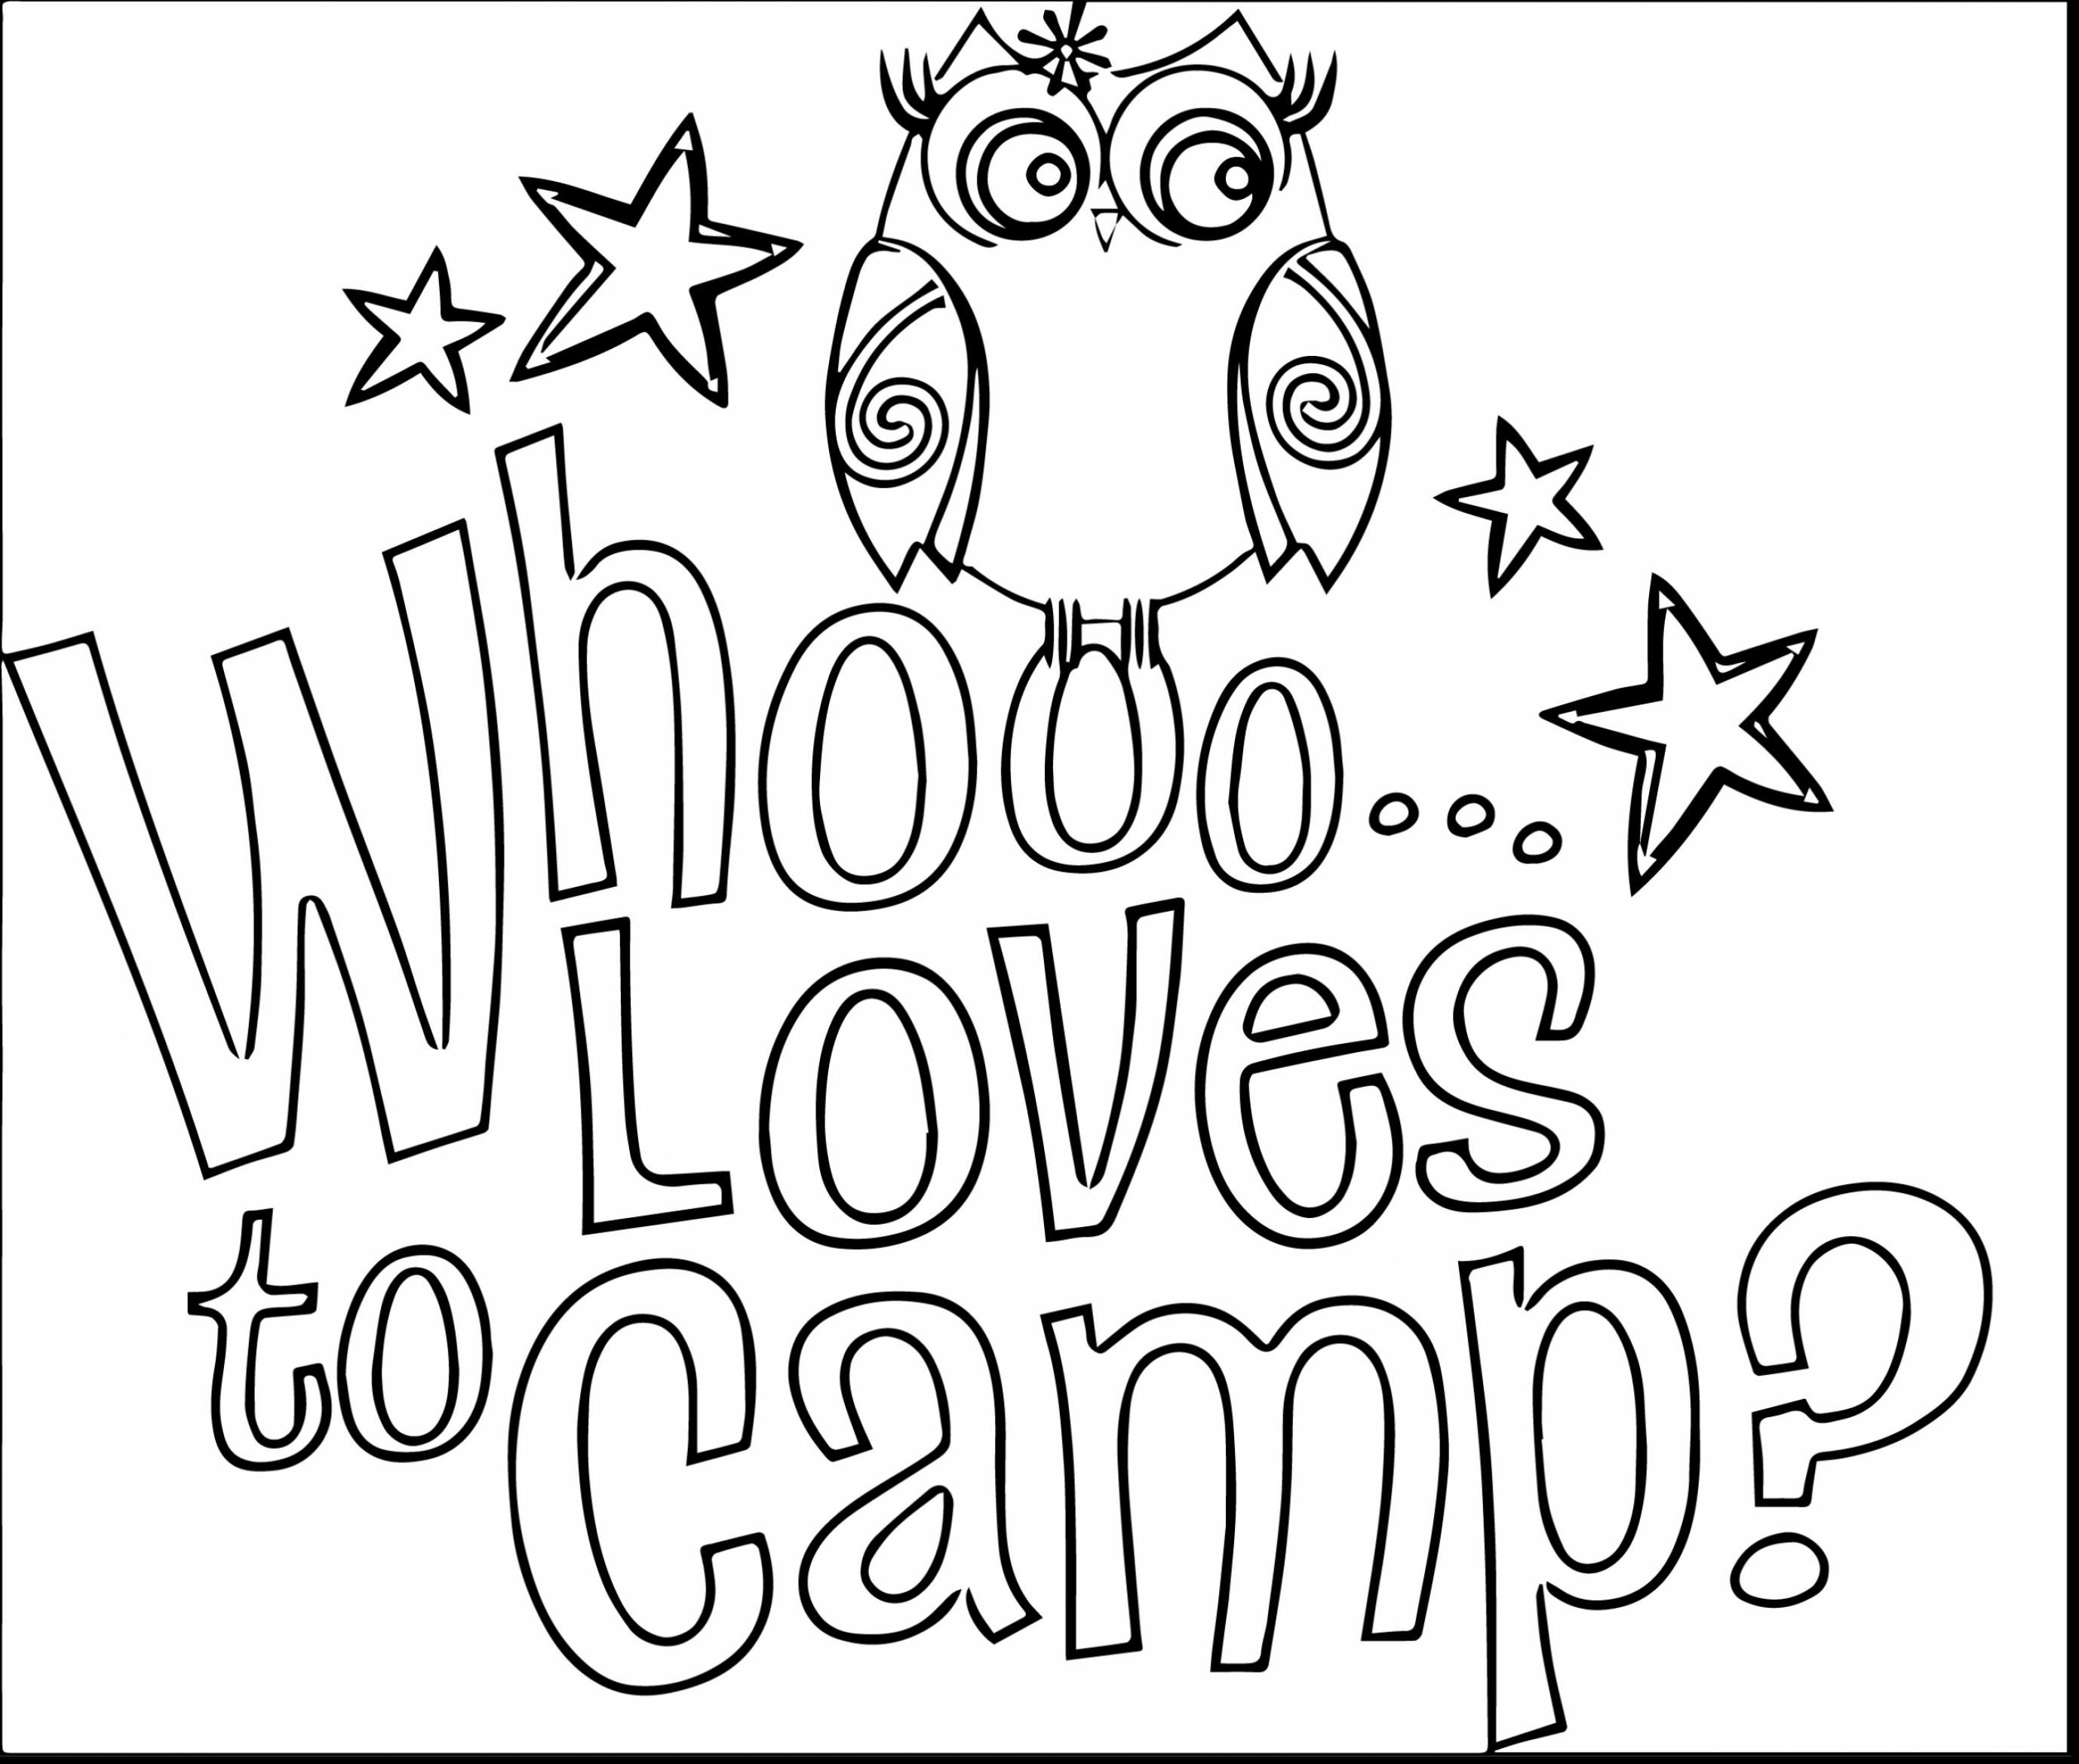 Incredible girl scout clip art with camping coloring pages